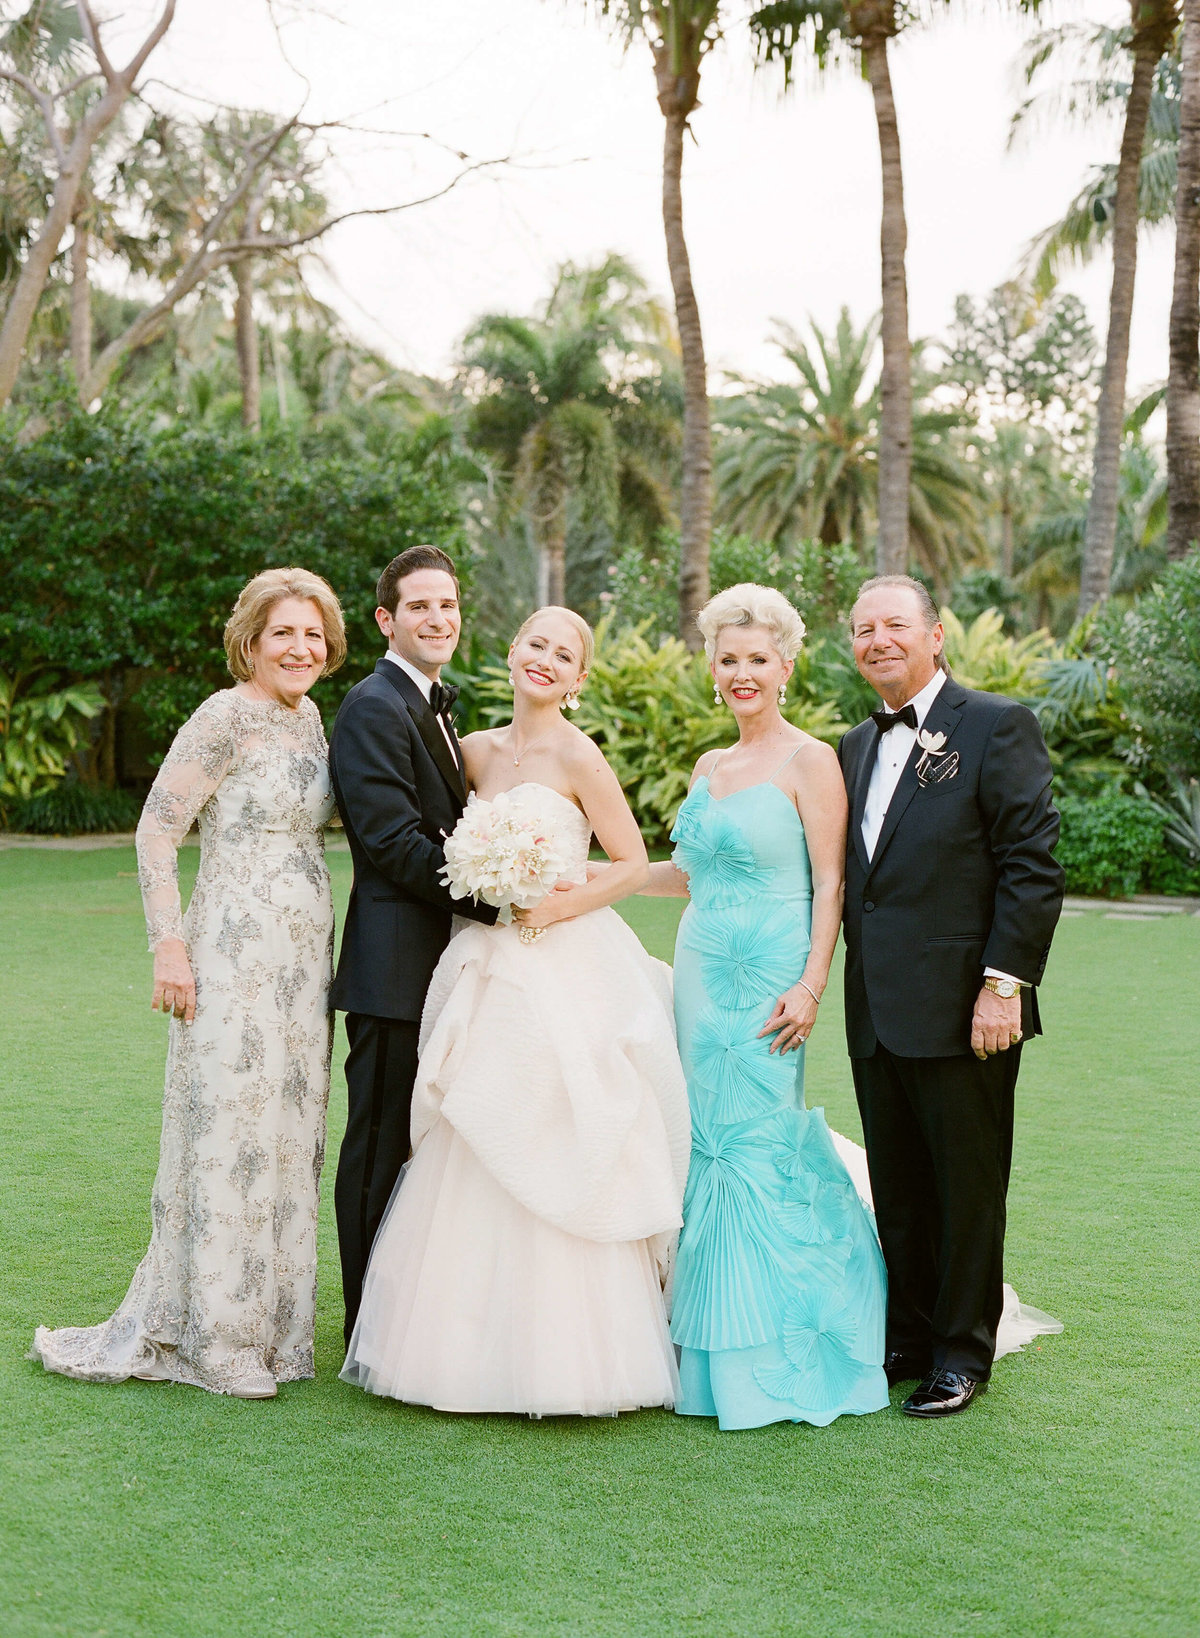 25-KTMerry-weddings-Palm-Beach-parent-portrait